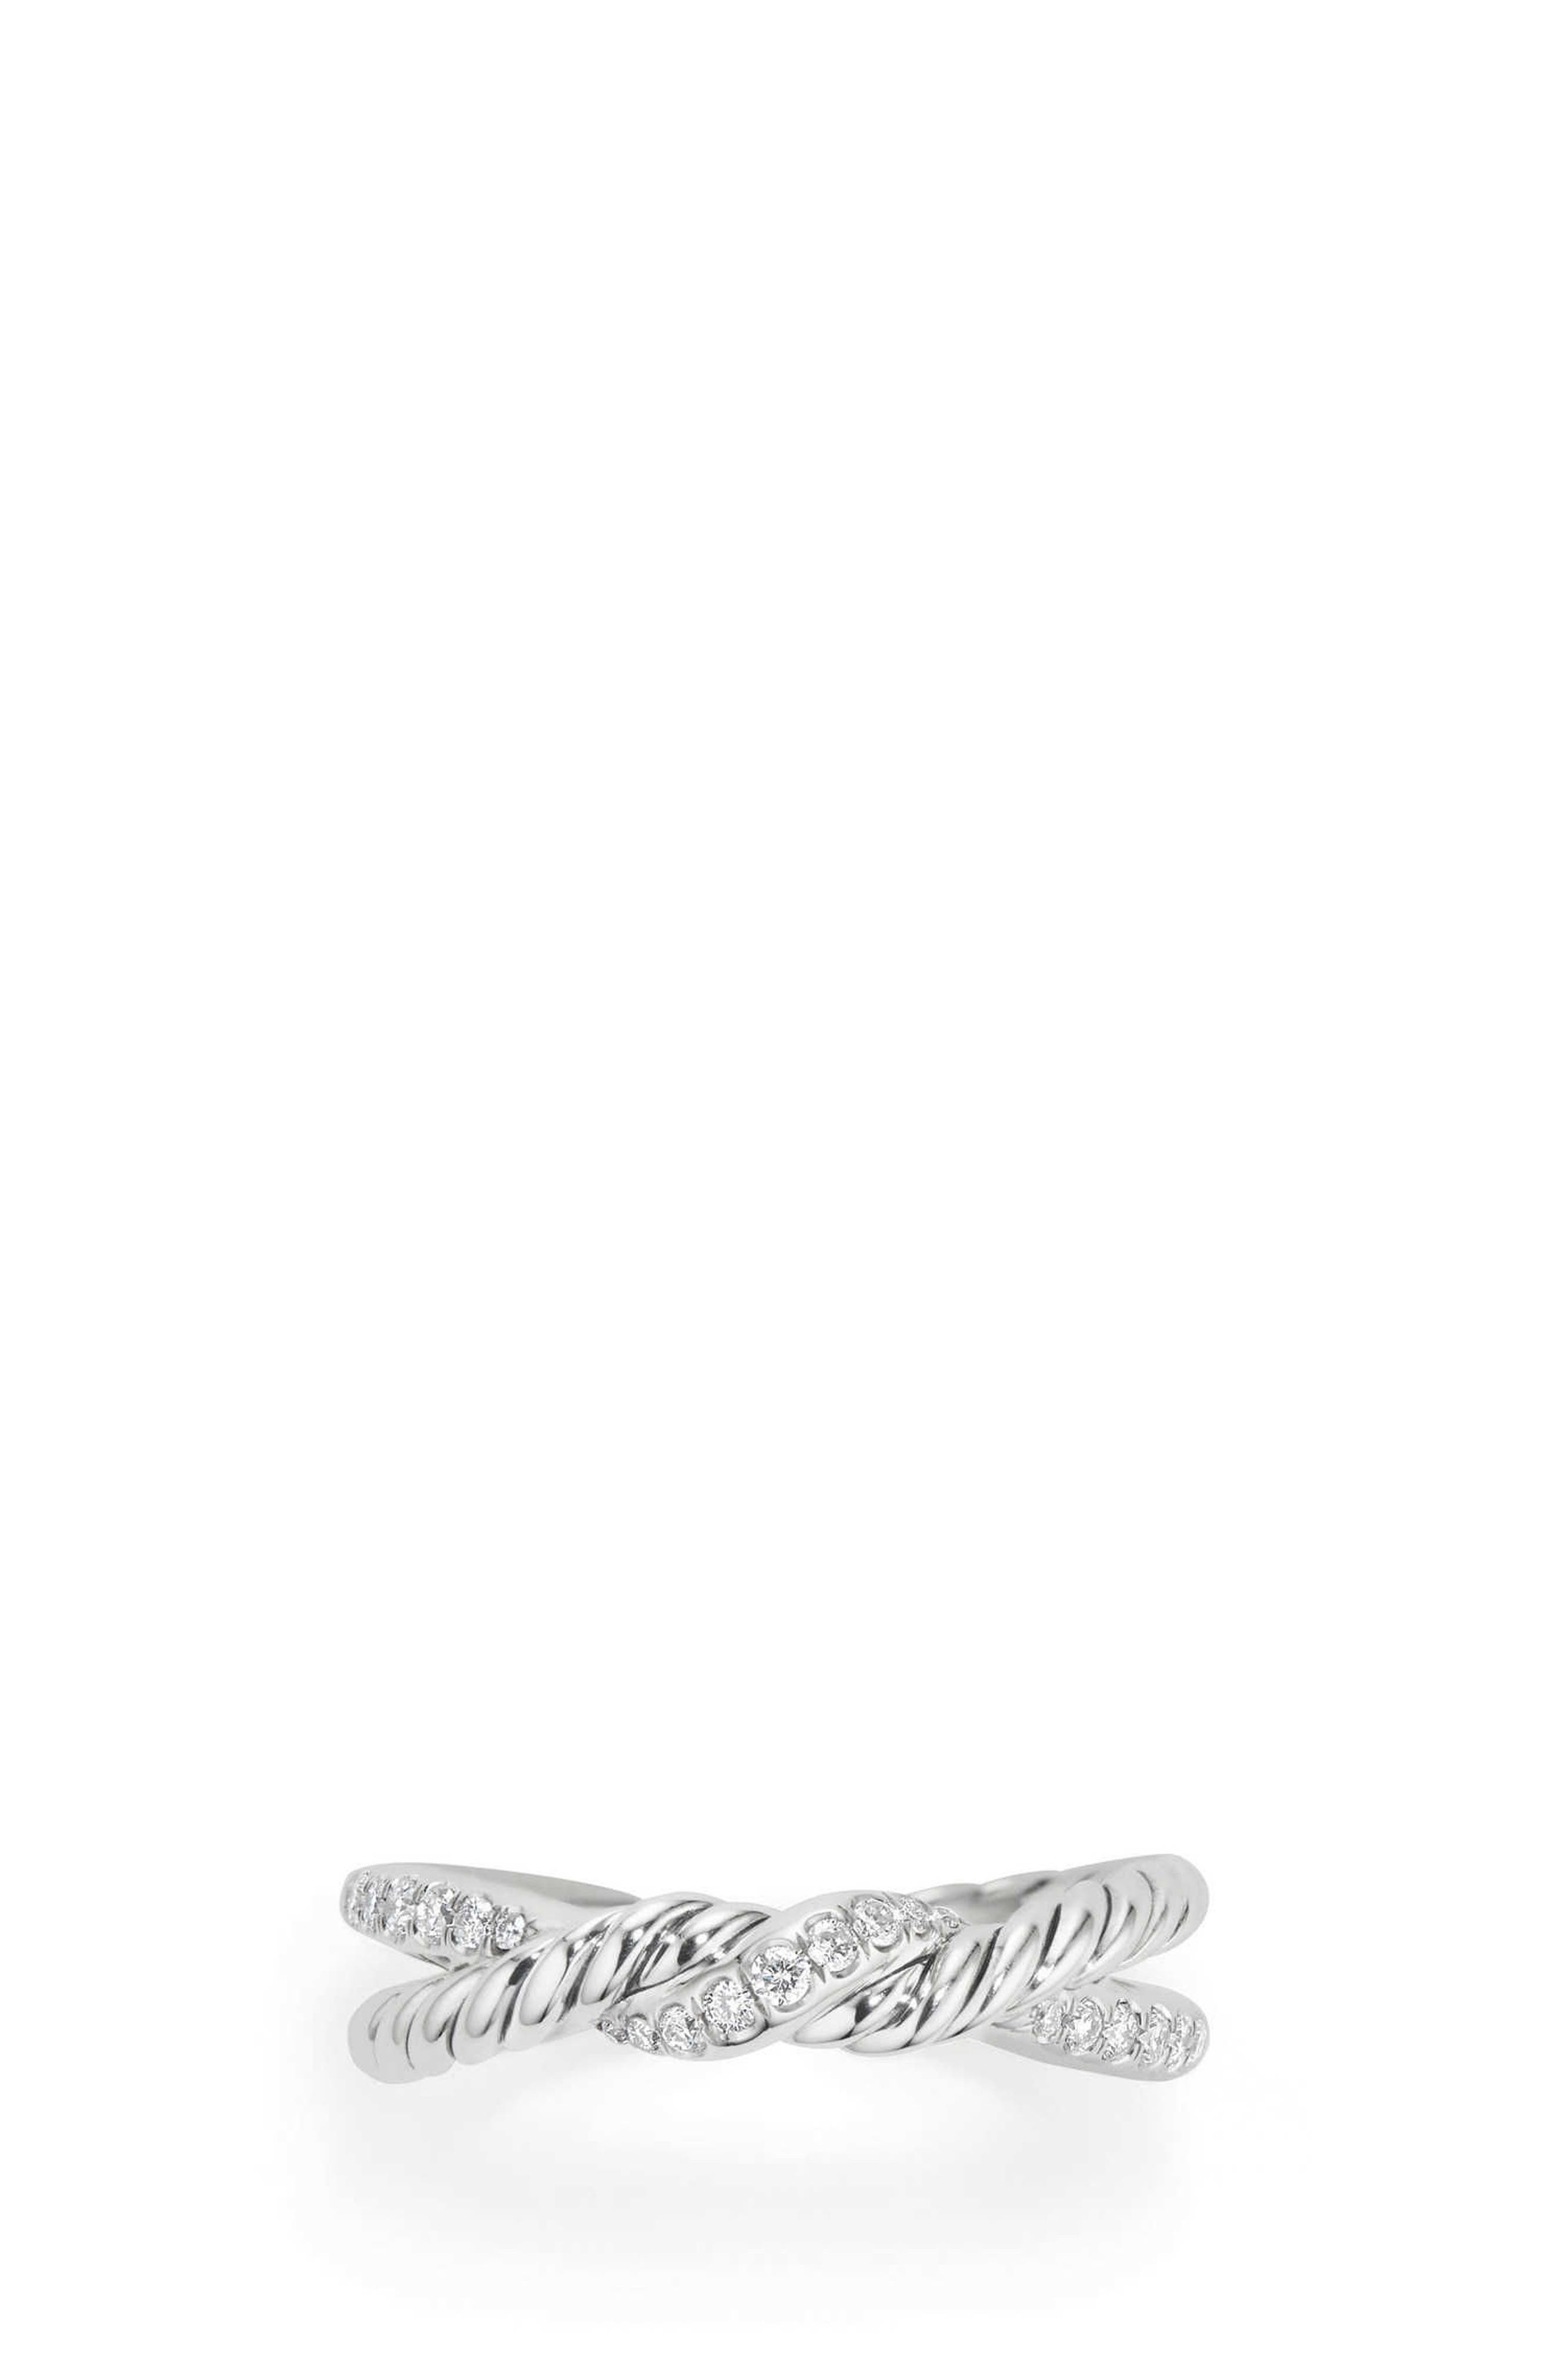 Continuance Twist Ring with Diamonds,                             Main thumbnail 1, color,                             SILVER/ DIAMOND